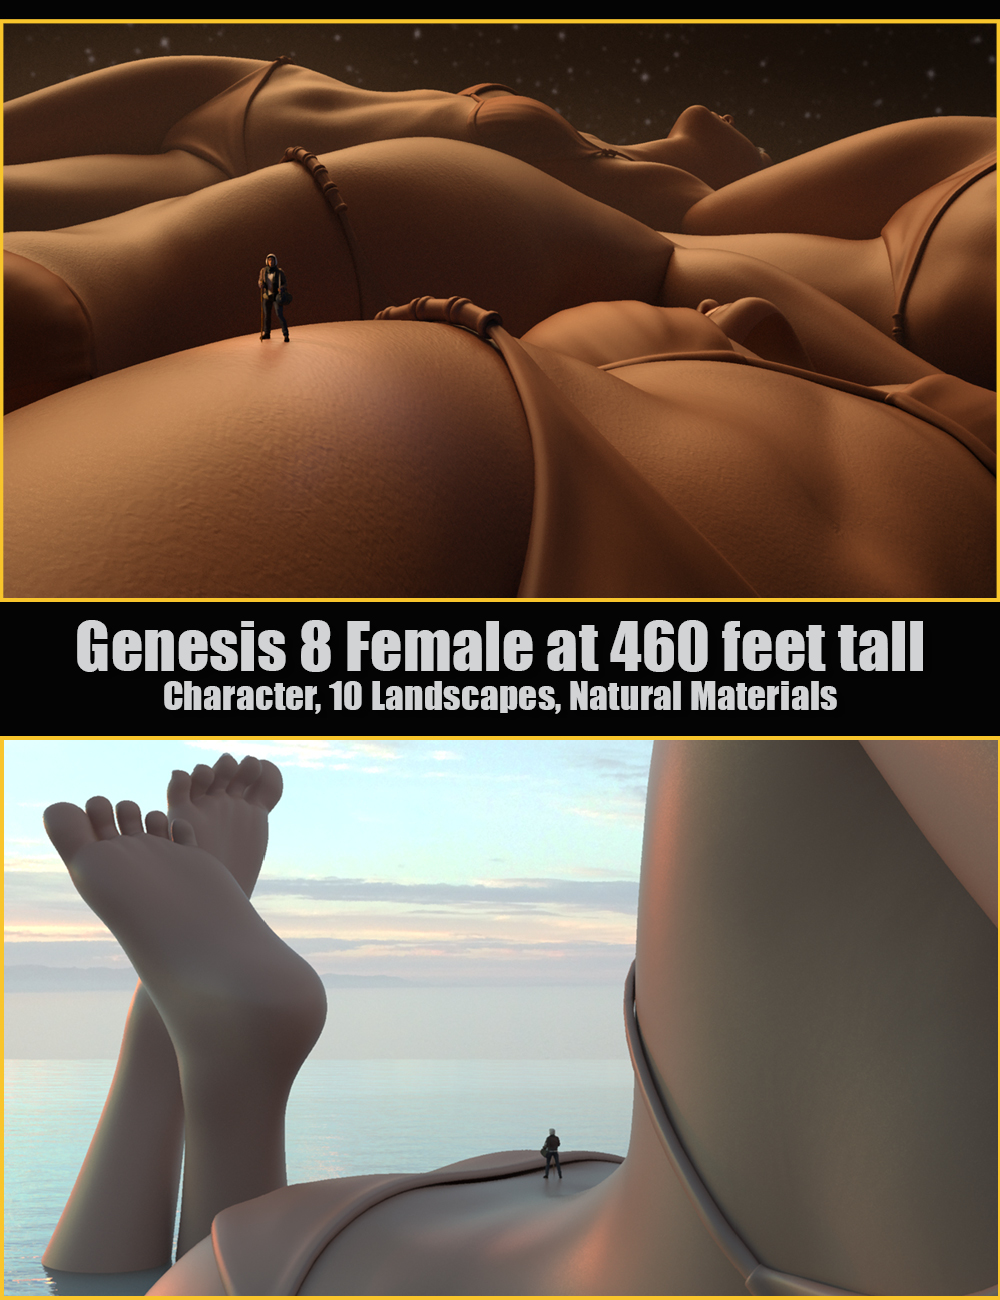 BodyScapes for Genesis 8 Female by: MarshianOso3D, 3D Models by Daz 3D